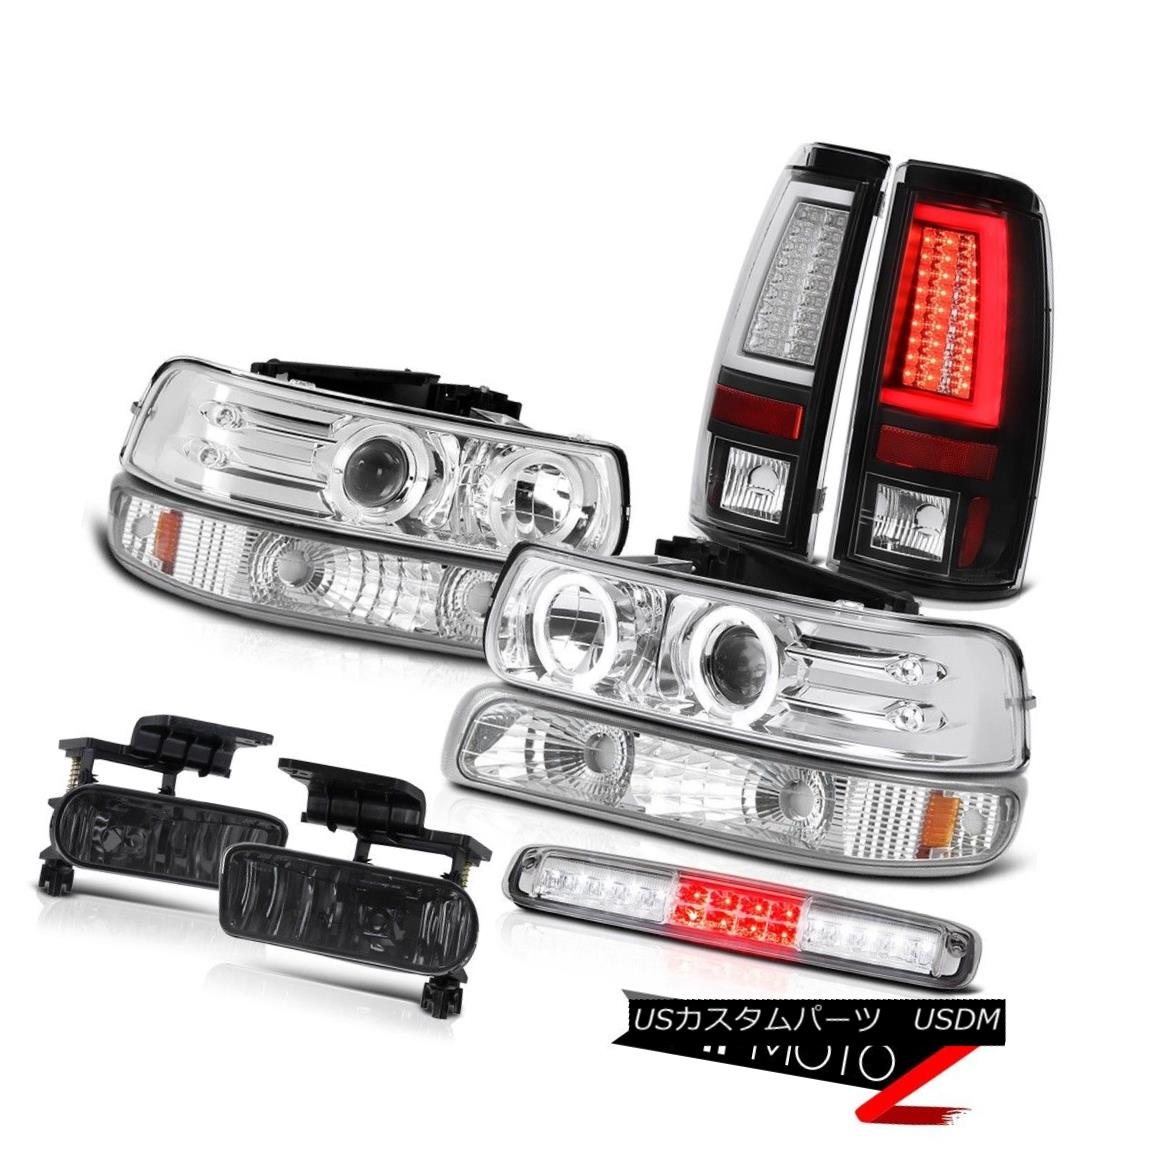 テールライト 99-02 Silverado 1500 Taillamps Parking Lamp Headlamps High Stop Fog Lamps LED 99-02 Silverado 1500 TaillampsパーキングランプヘッドランプハイストップフォグランプLED